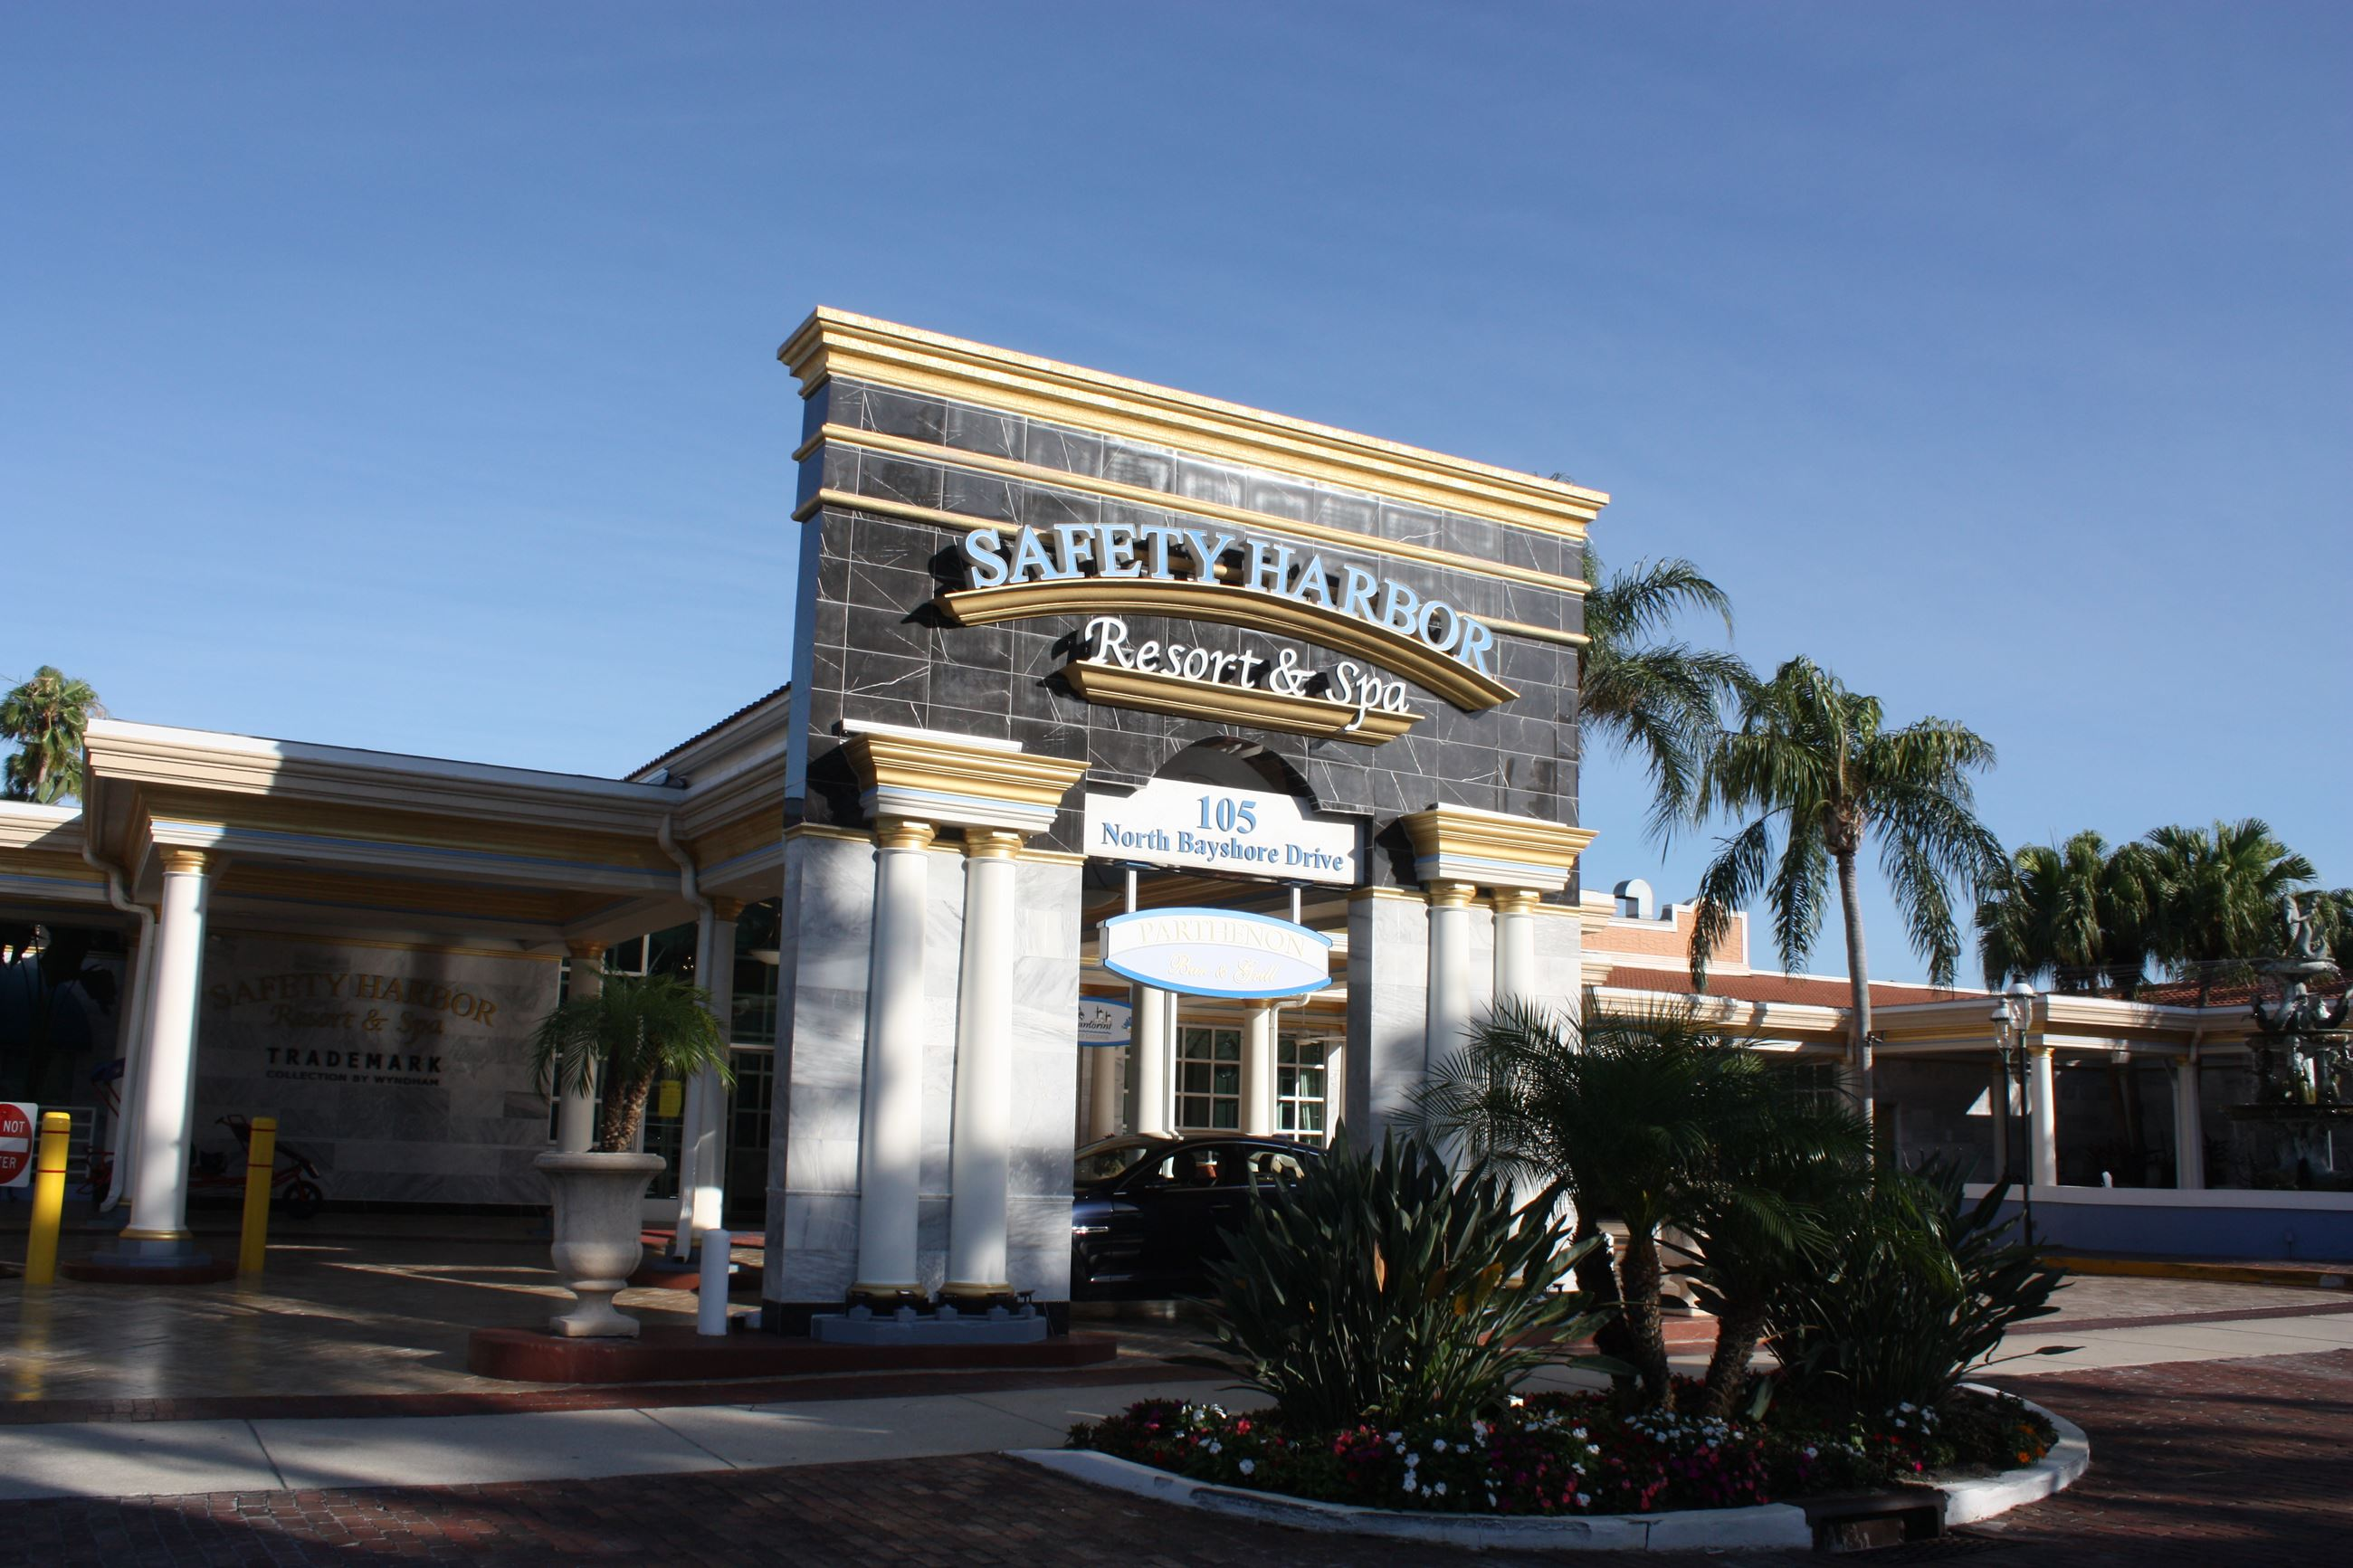 Front entrance of Safety Harbor Resort & Spa at 105 North Bayshore Drive